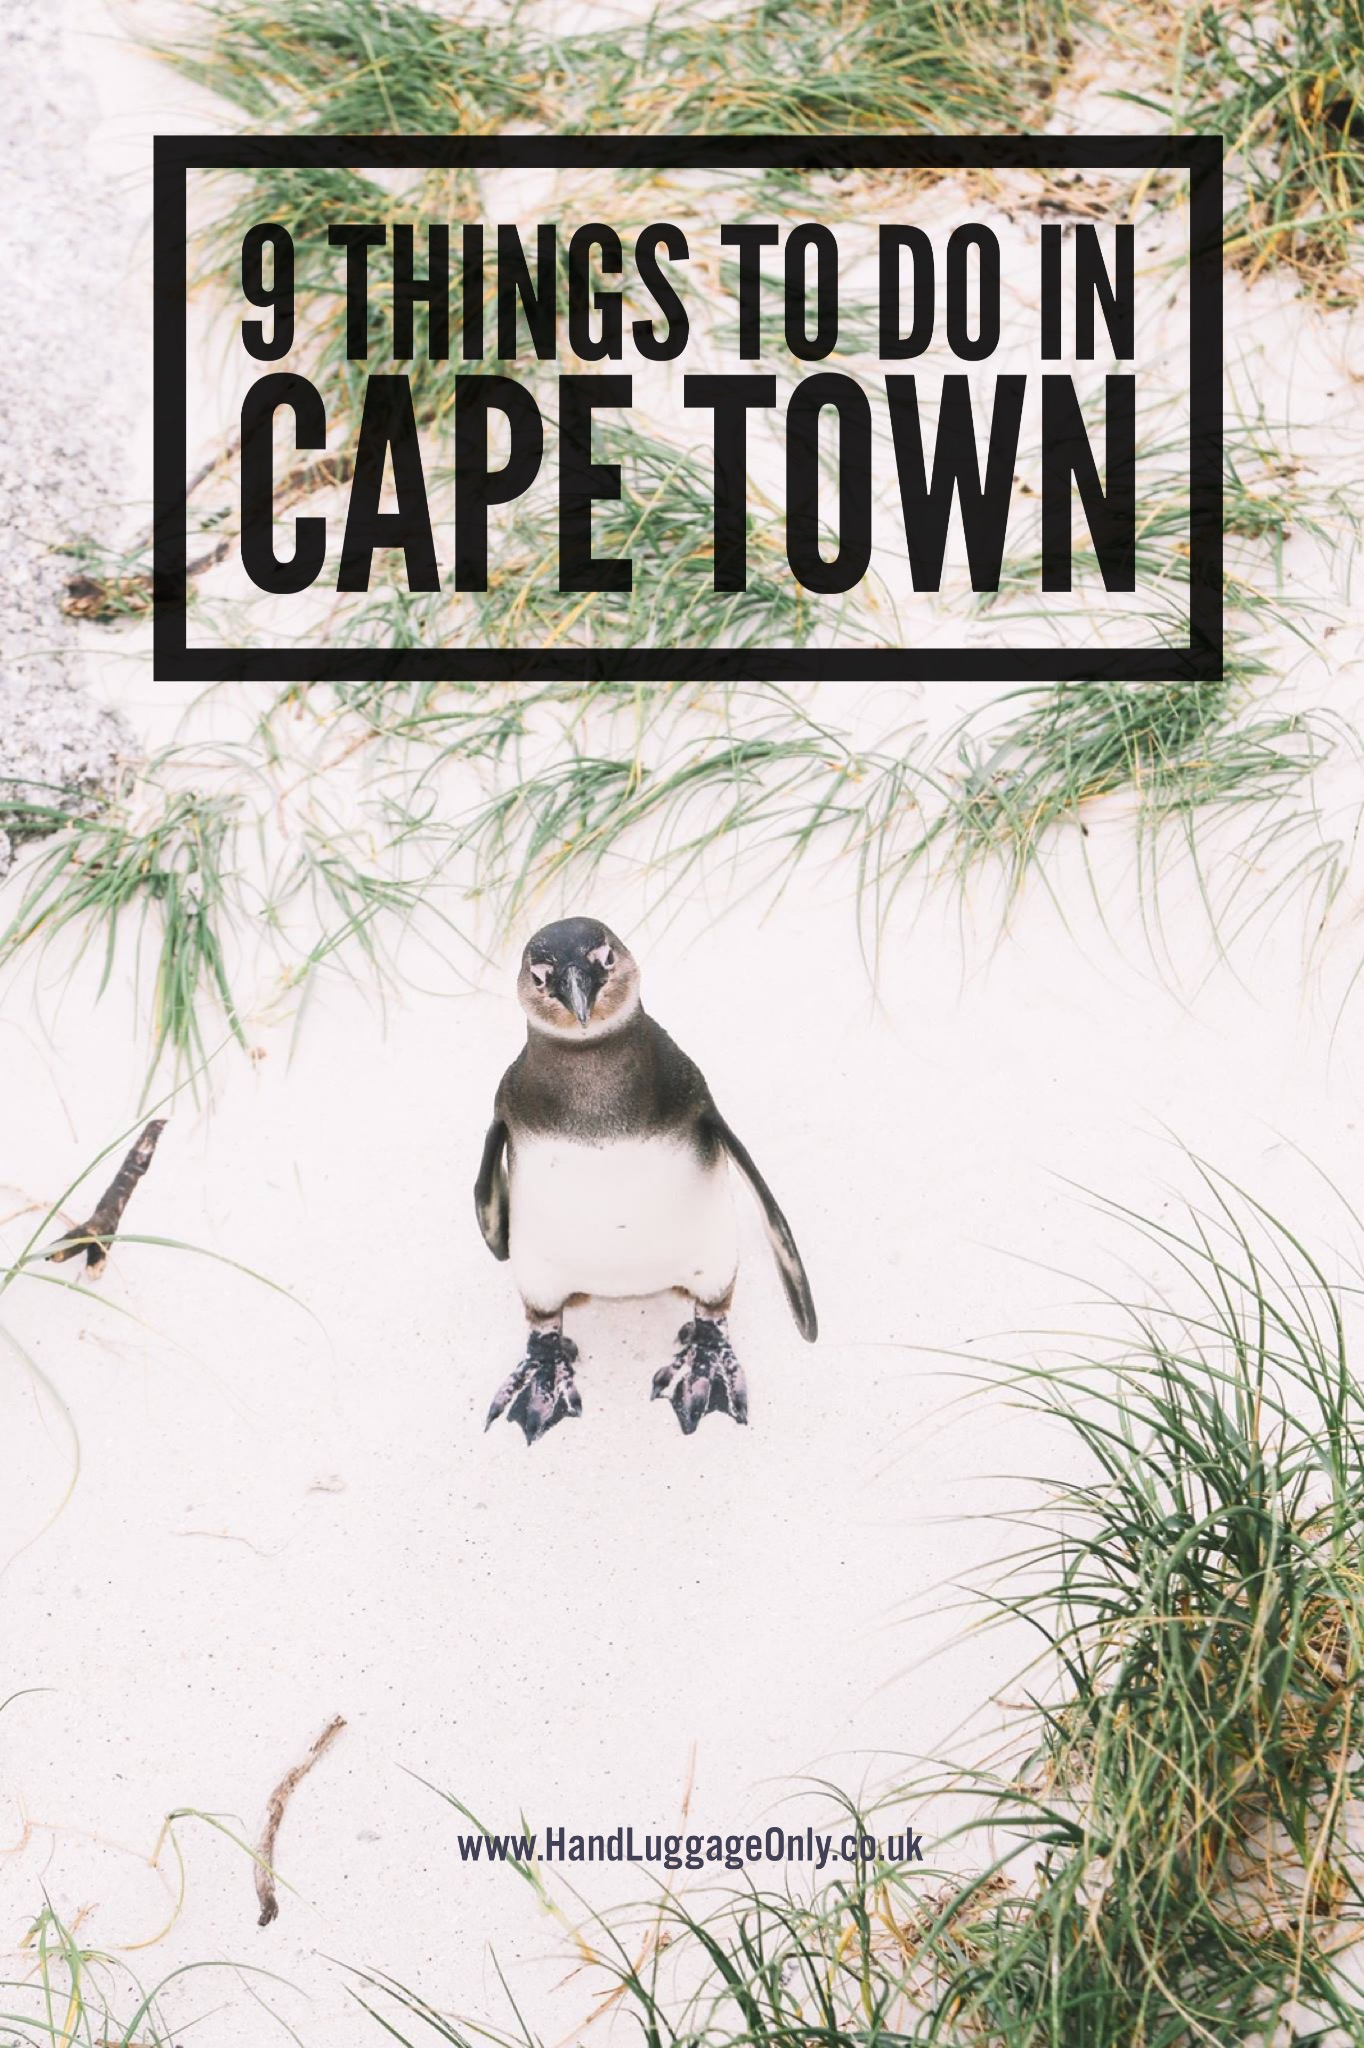 9 Things To Do In Cape Town, South Africa